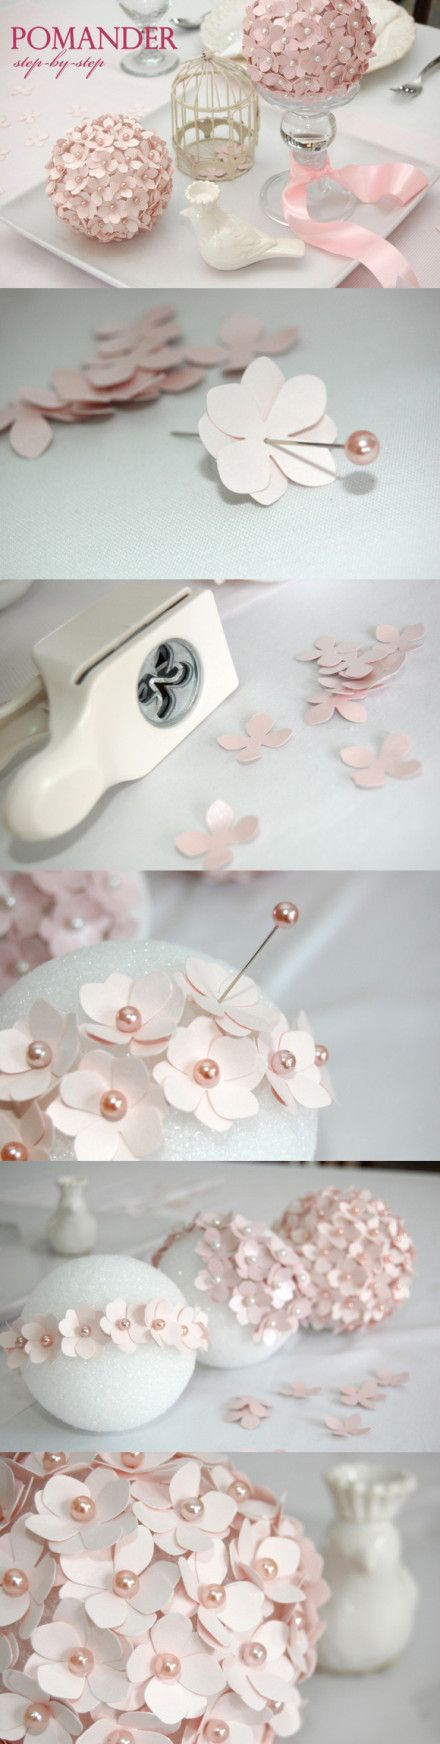 Idea, Flower Ball, Paper Flowers, Paper Punch, Shower, Centerpieces, Diy, Tables Decor, Center Piece